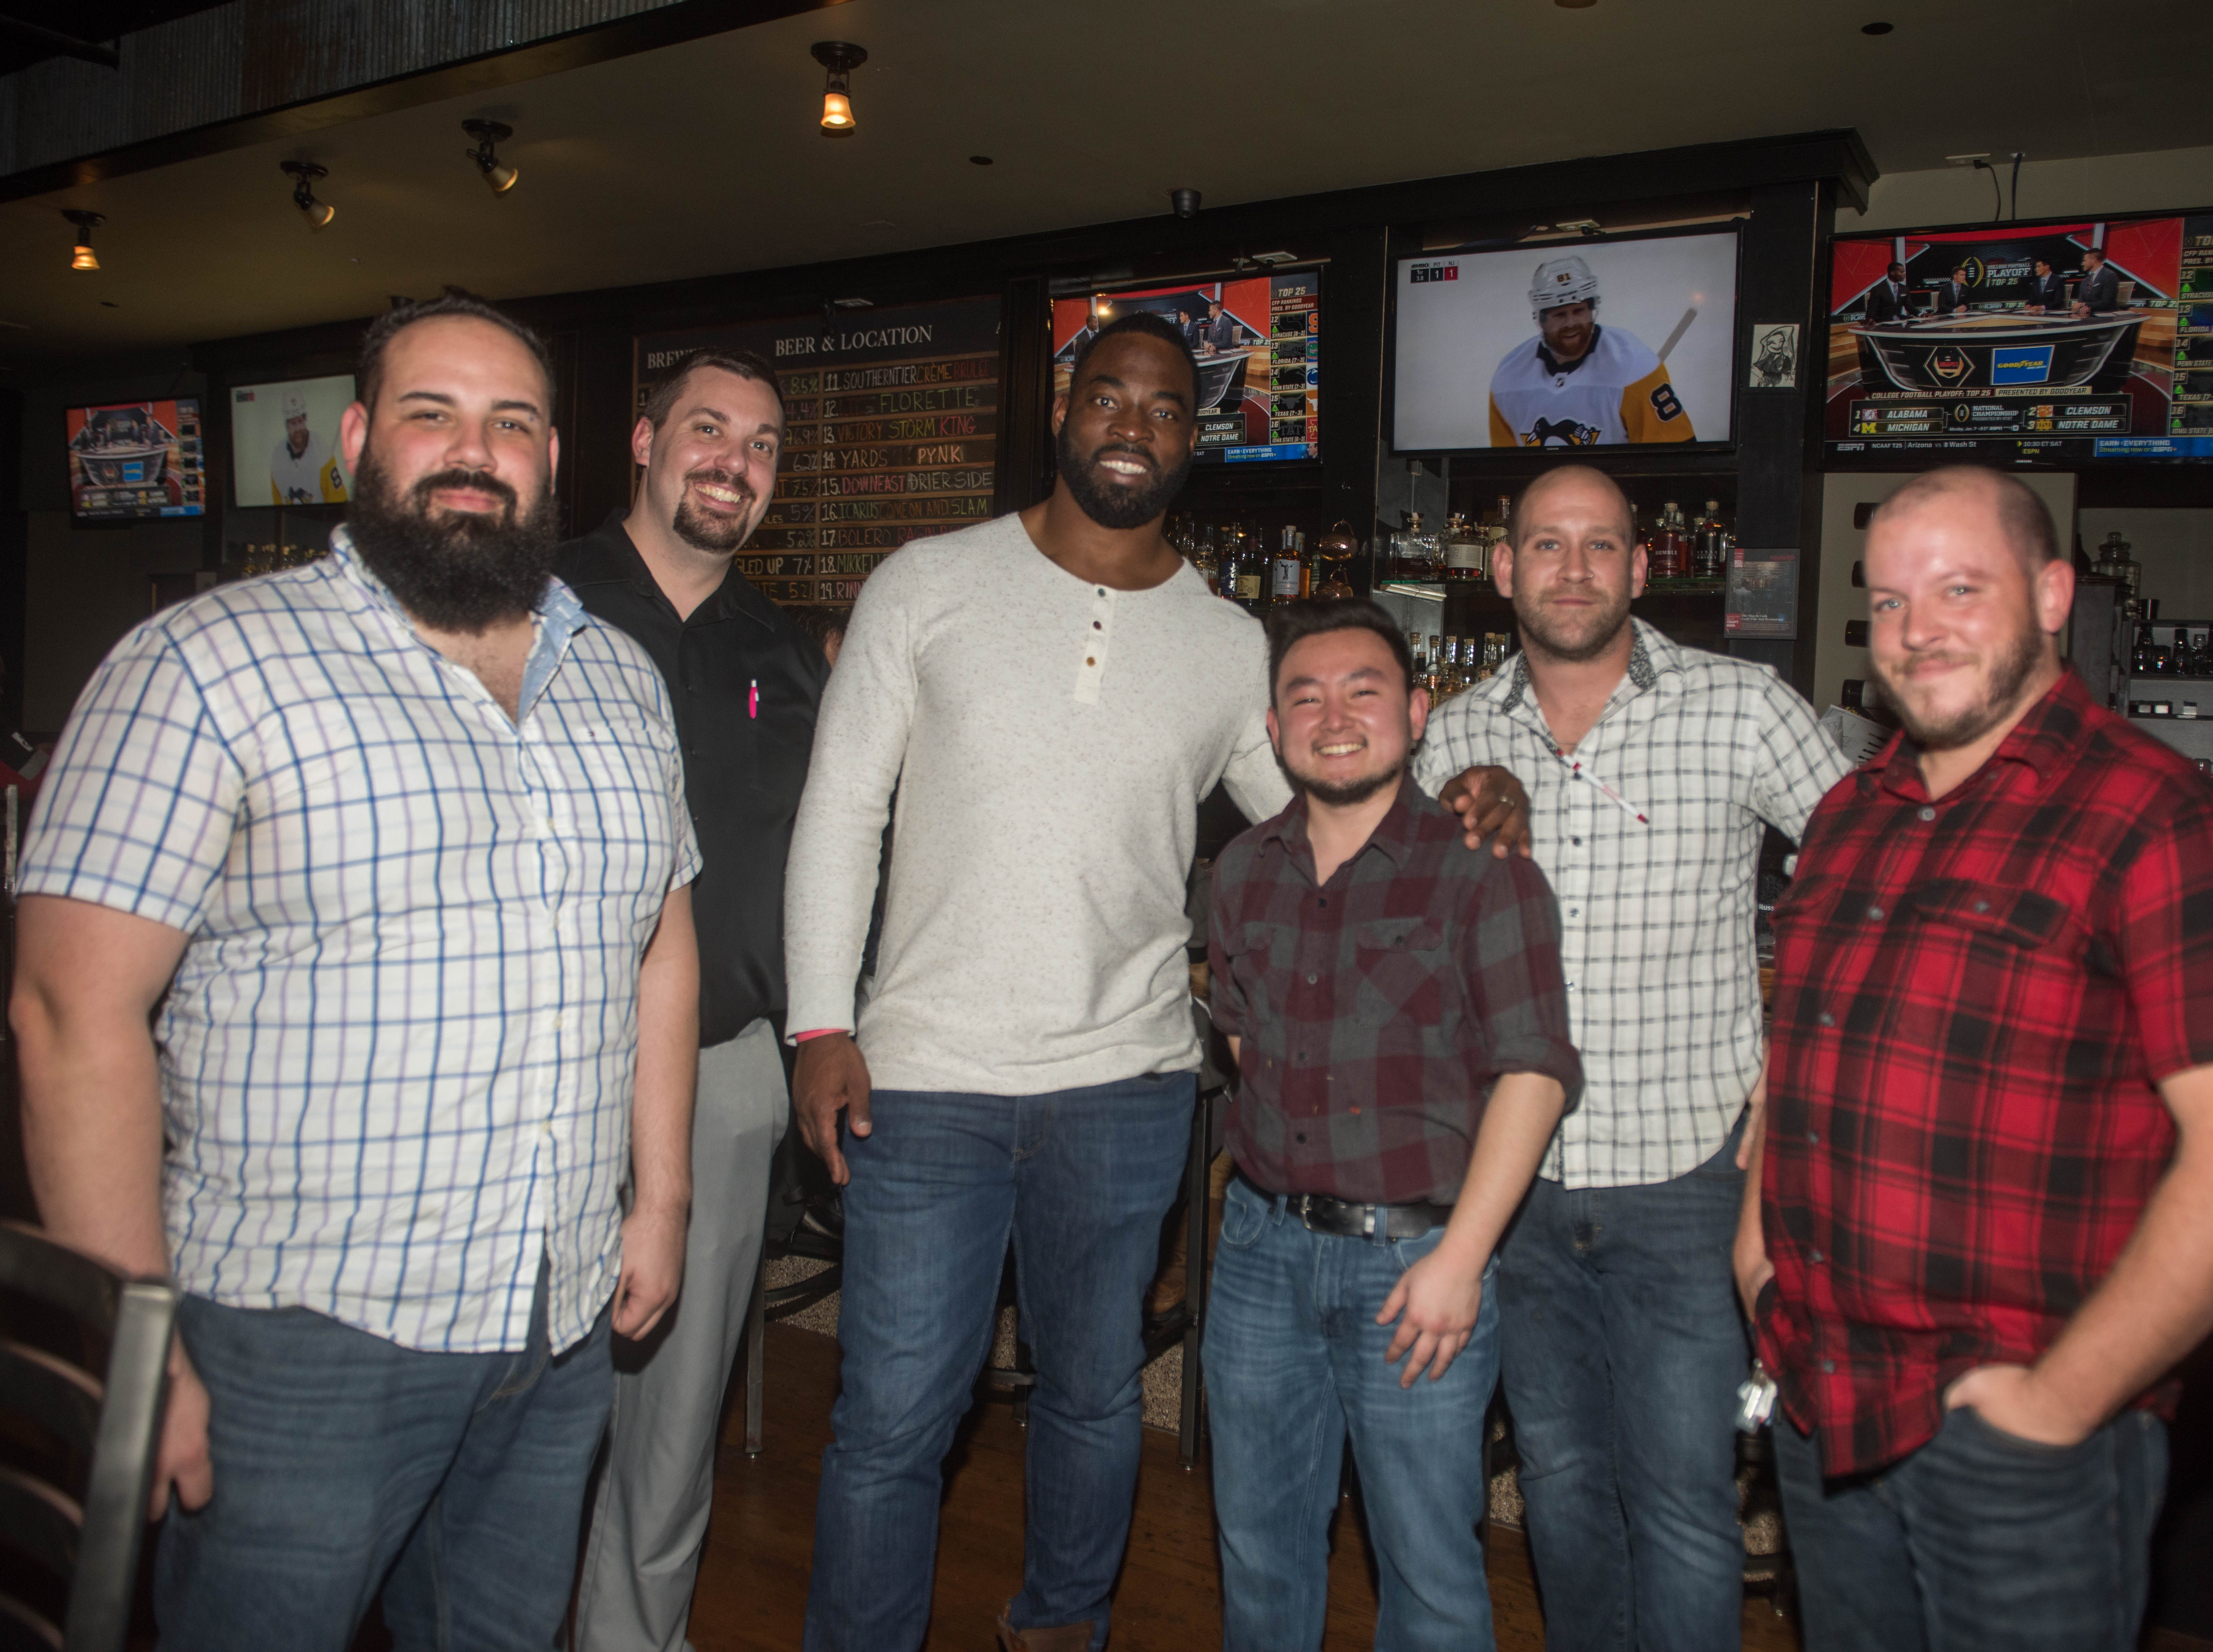 Albert Camacho, Jeffrey Hoffman, Justin Tuck, Chris Ulanday, Brian Bannat and Mike Zahorniak. (201) Magazine and NorthJersey.com held Taste Test Tuesday at he Dog and Cask in Rochelle Park with this month's cover model, Lauran Tuck and former cover model and former NY Giant Justin Tuck. 11/13/2018